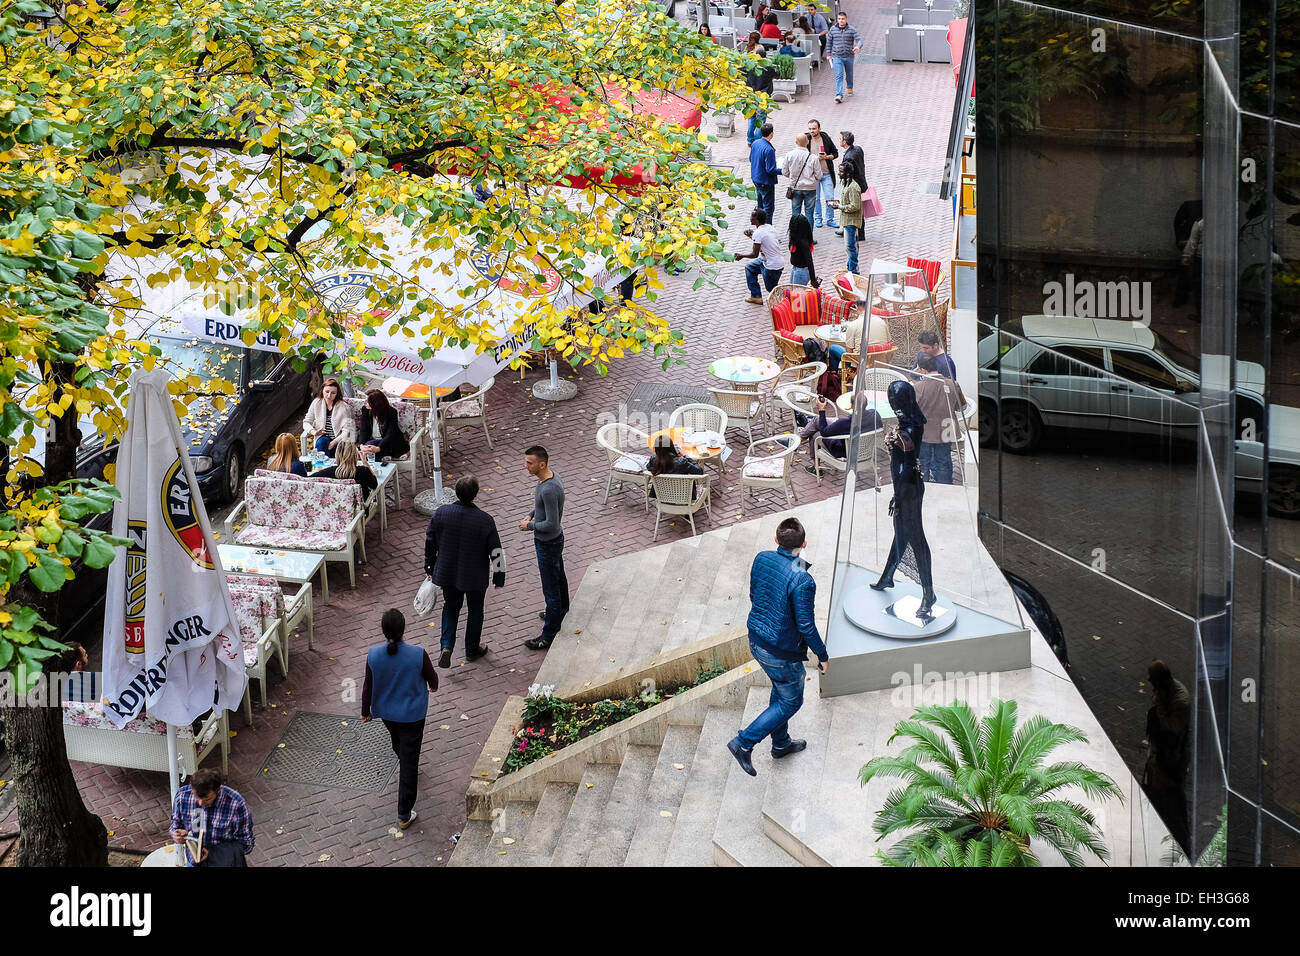 Albania, Tirana, Blloku neighbourhood, in the middle of the city, a zone popular for numerous cafes, bars and vivid - Stock Image